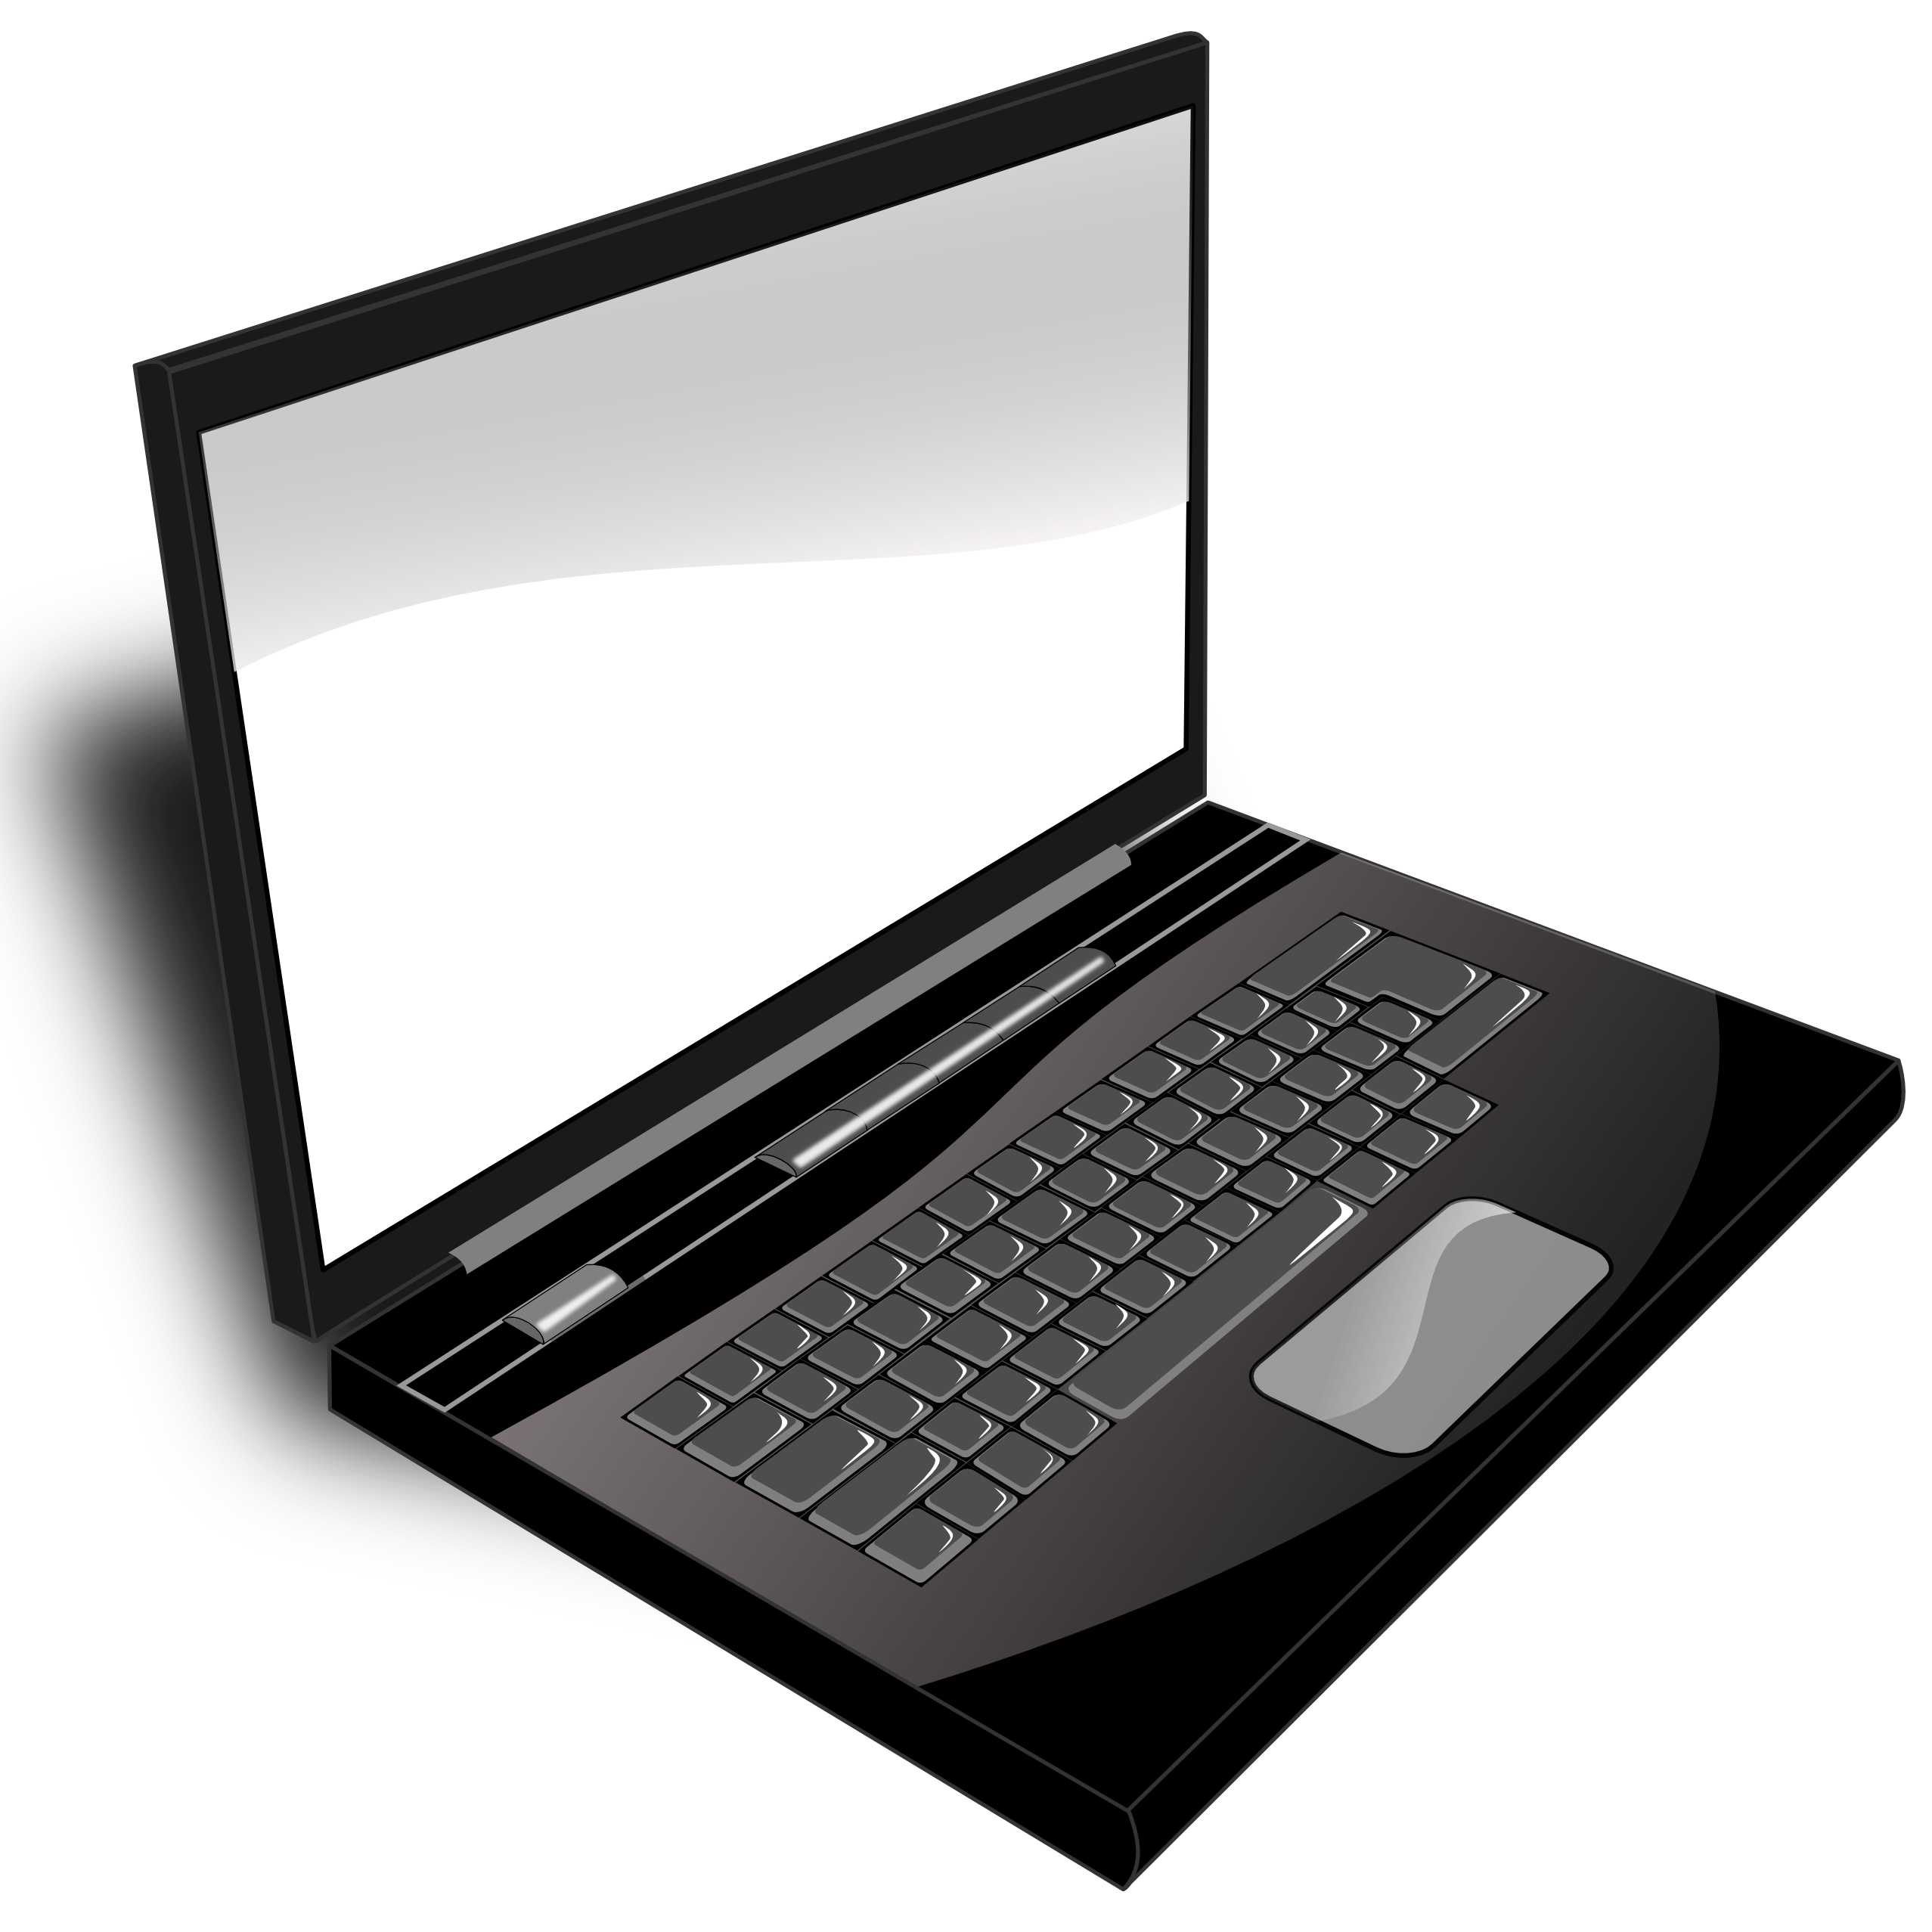 Laptop Clip Art Black And White.